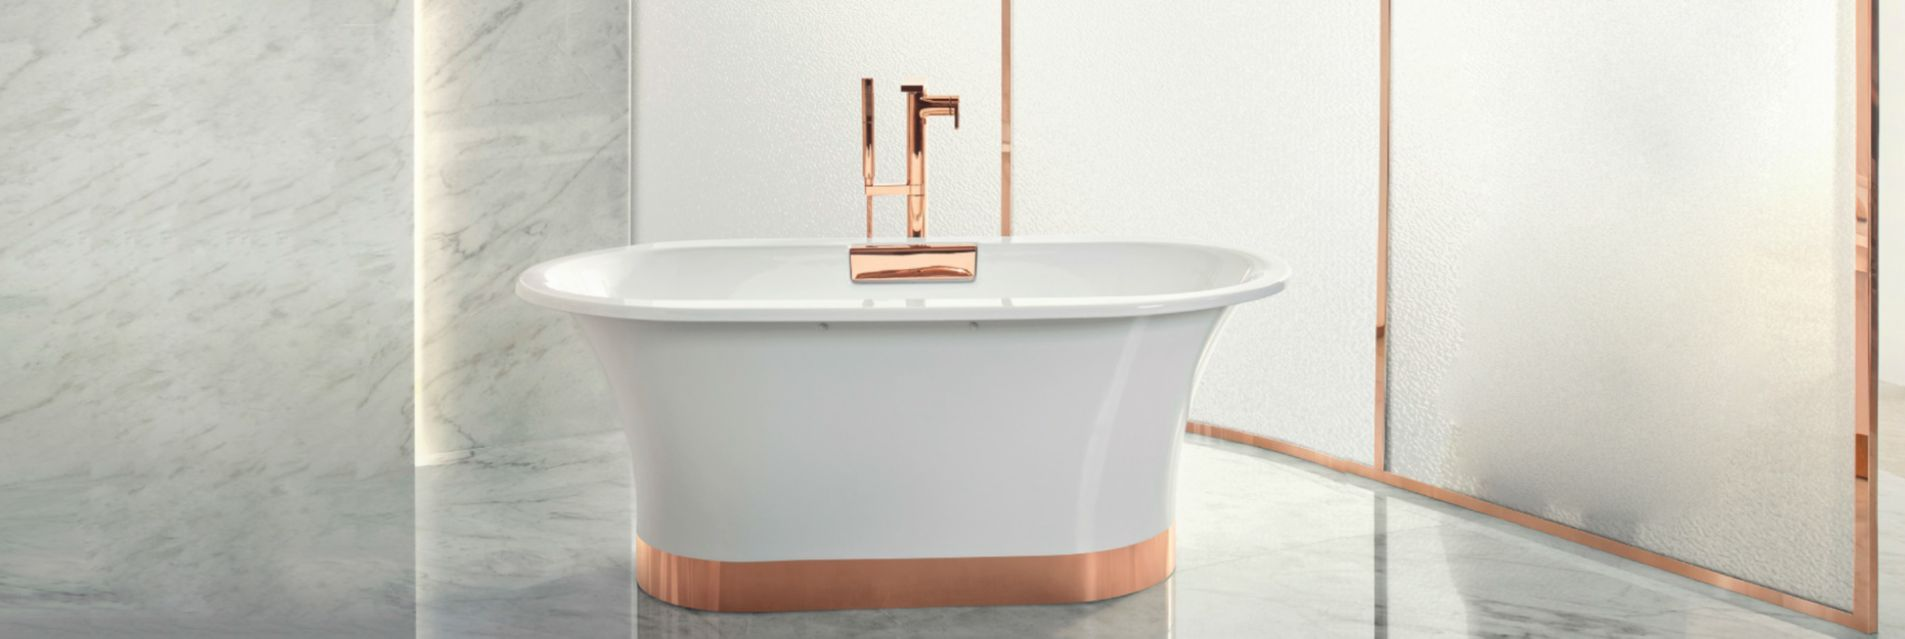 Kohler Cast Iron<sub>™</sub> Baths